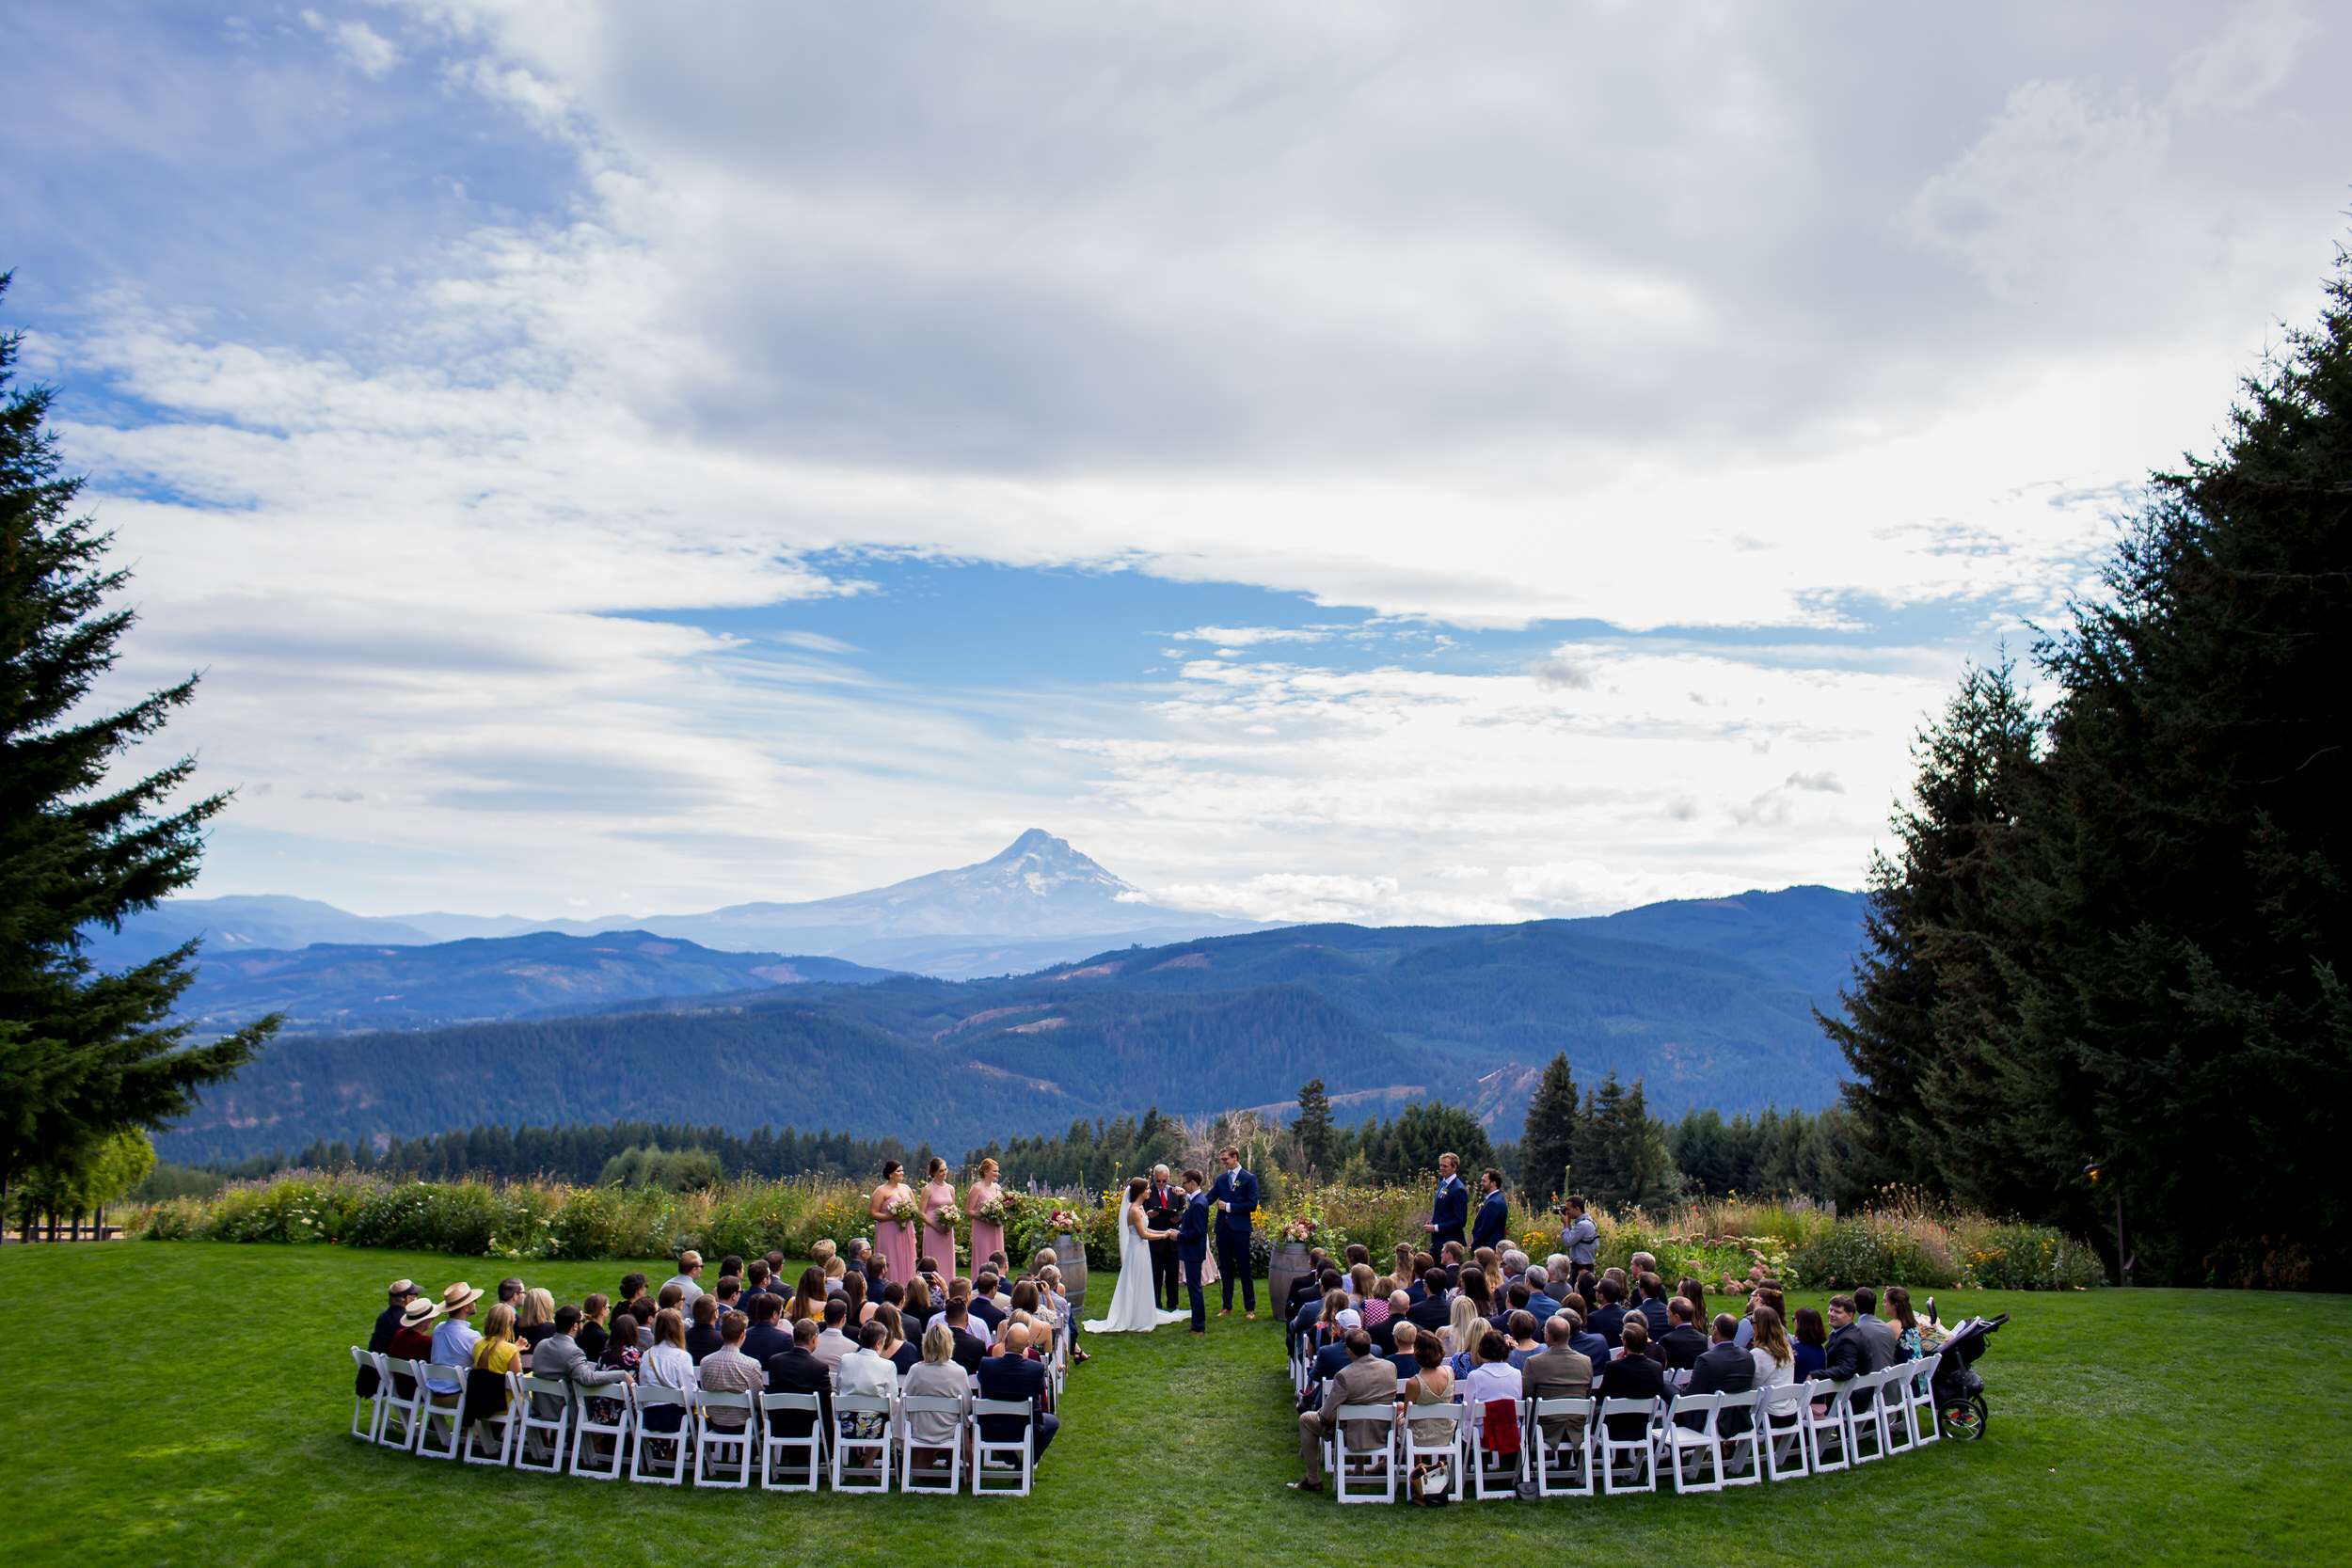 Gorge_Crest_Vineyards_Wedding_Stark_Photography_003